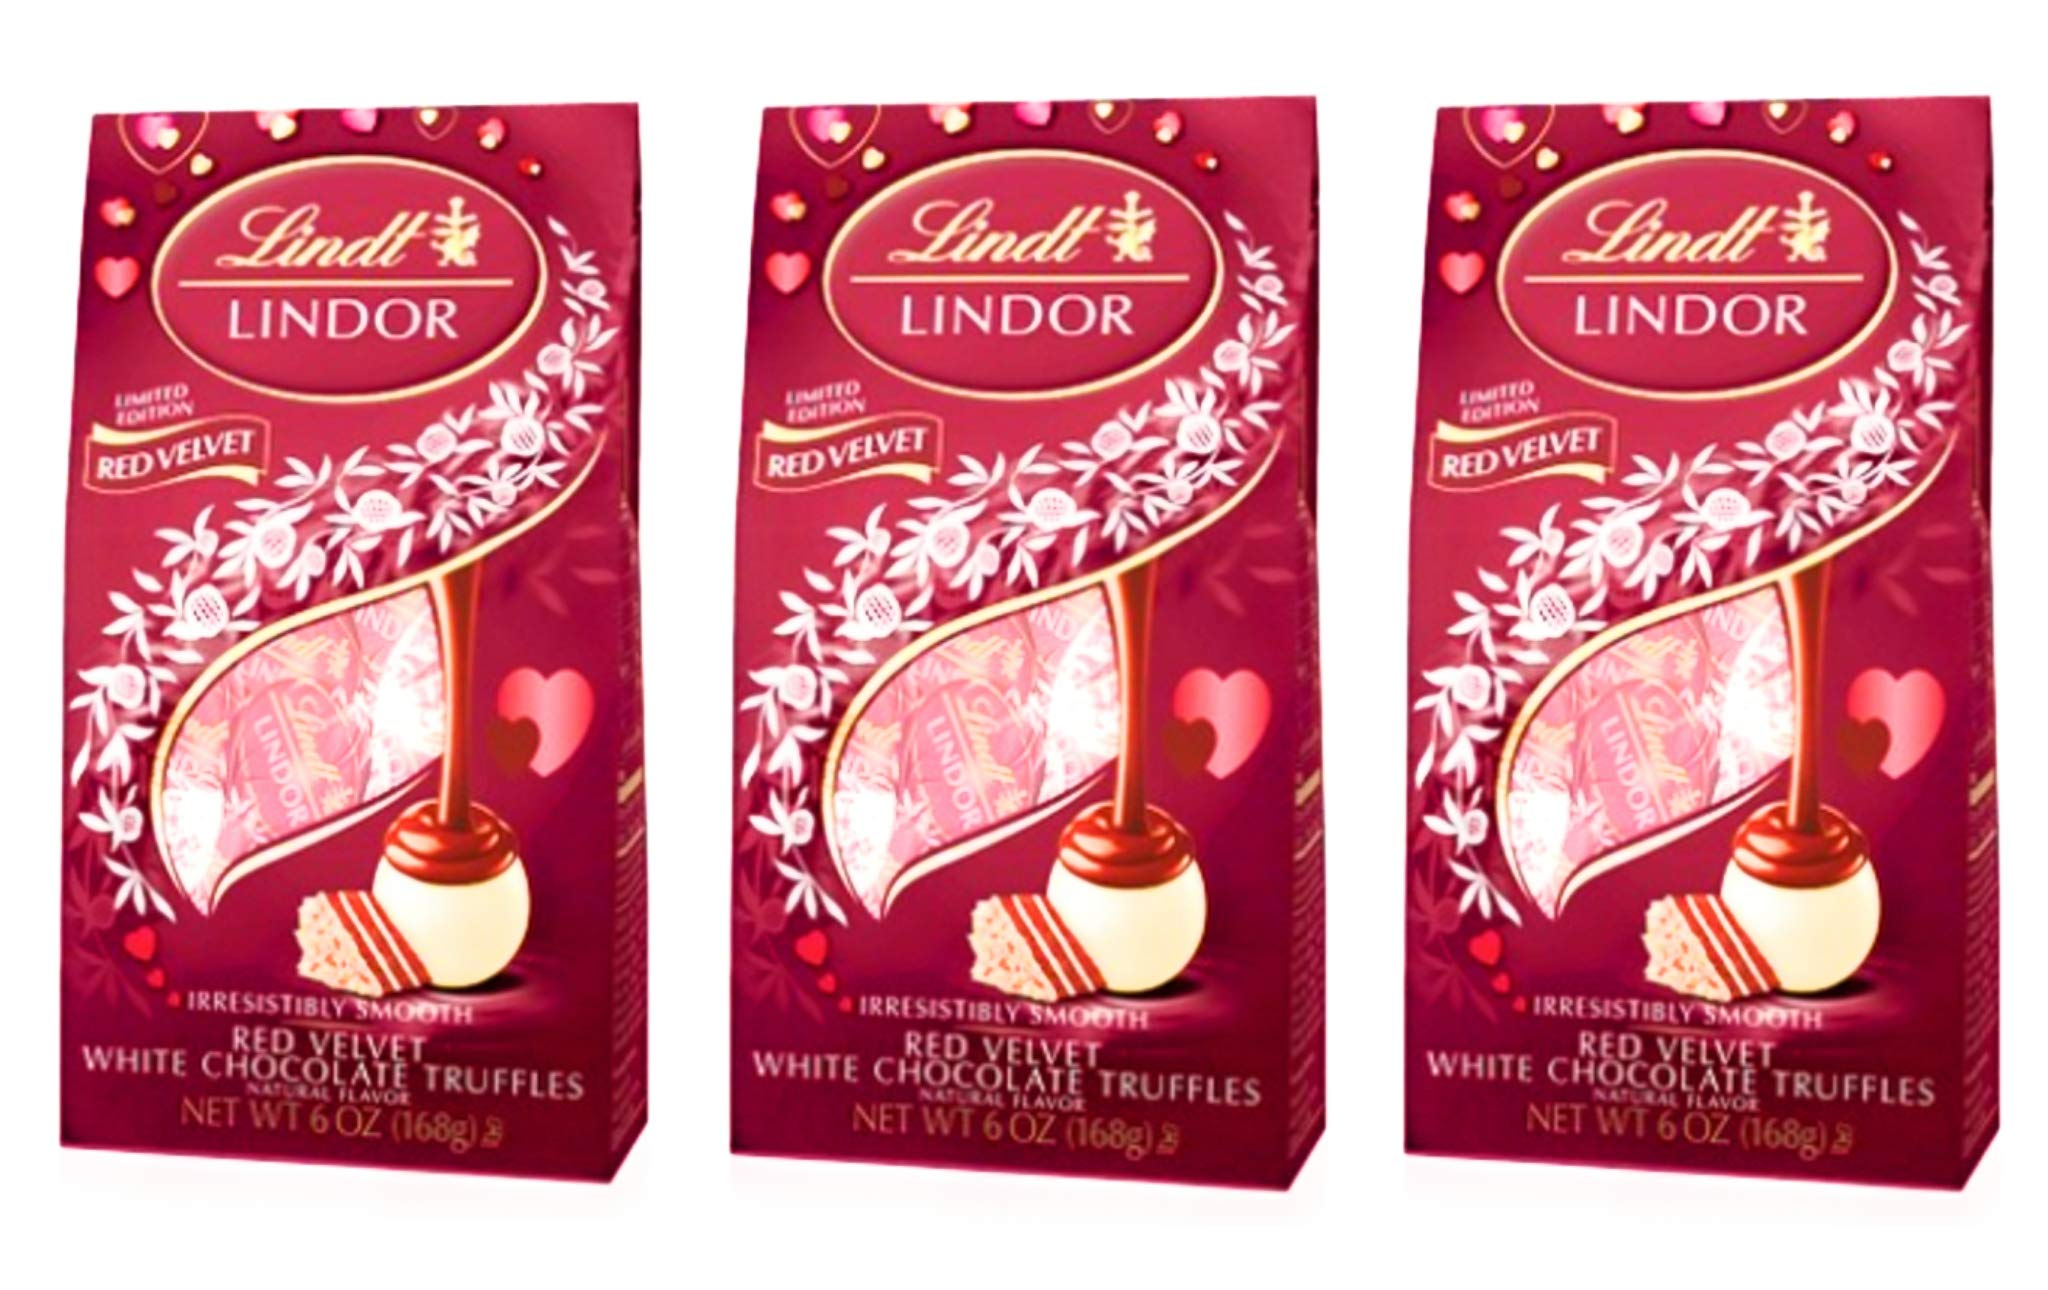 Lindt Lindor Valentines Red Velvet White Chocolate Candy Truffles - Pack of 3 Bags - 6 oz Per Bag (3 Bags, 18 oz Total)